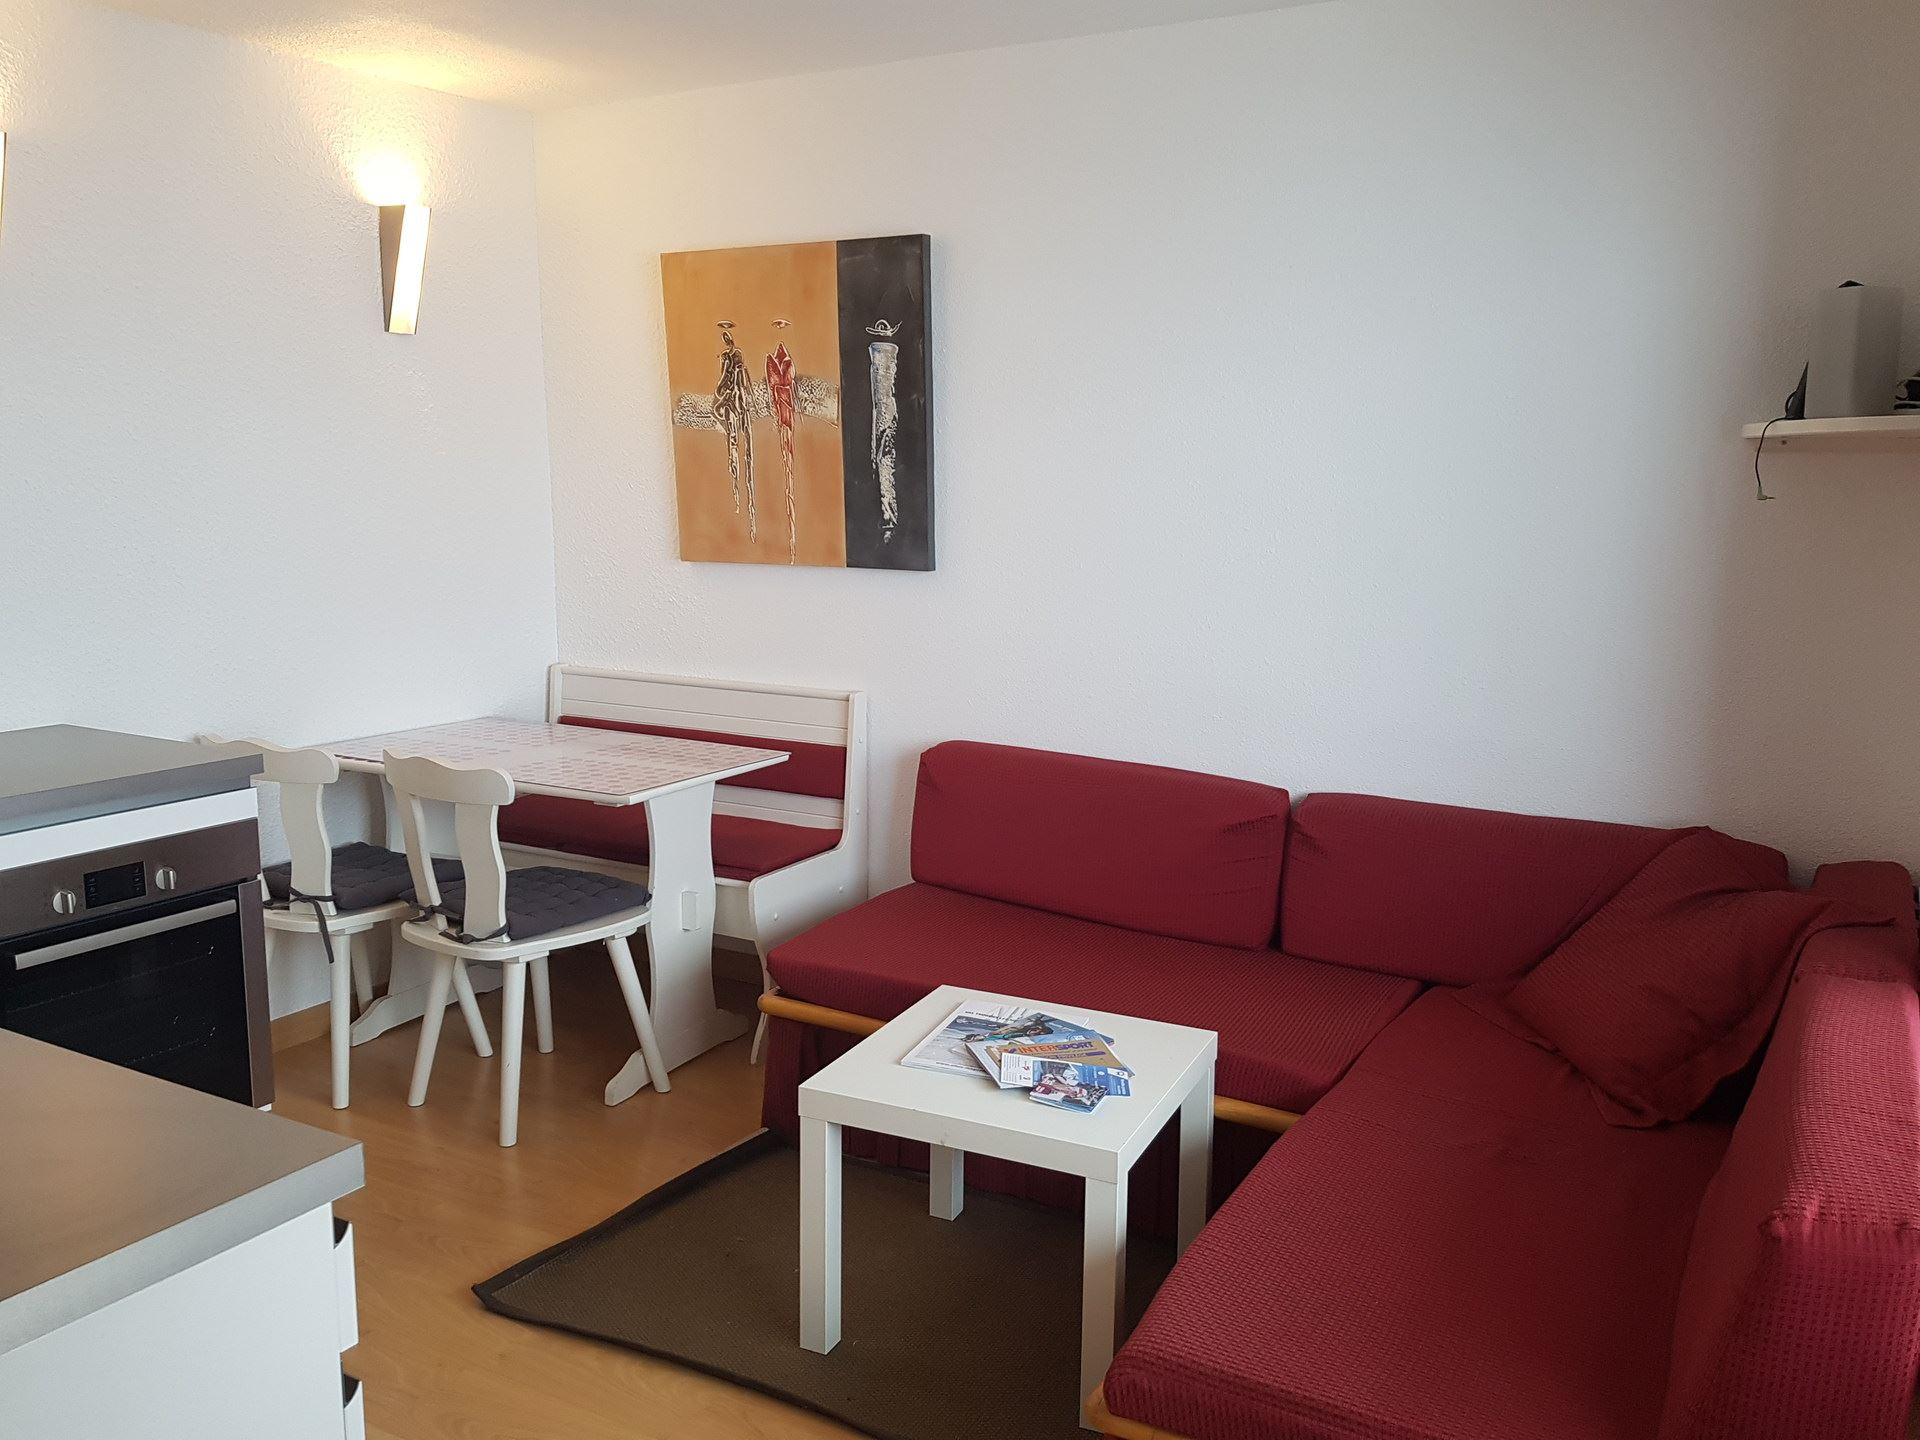 2 Rooms 4 Pers ski-in ski-out / NECOU 312